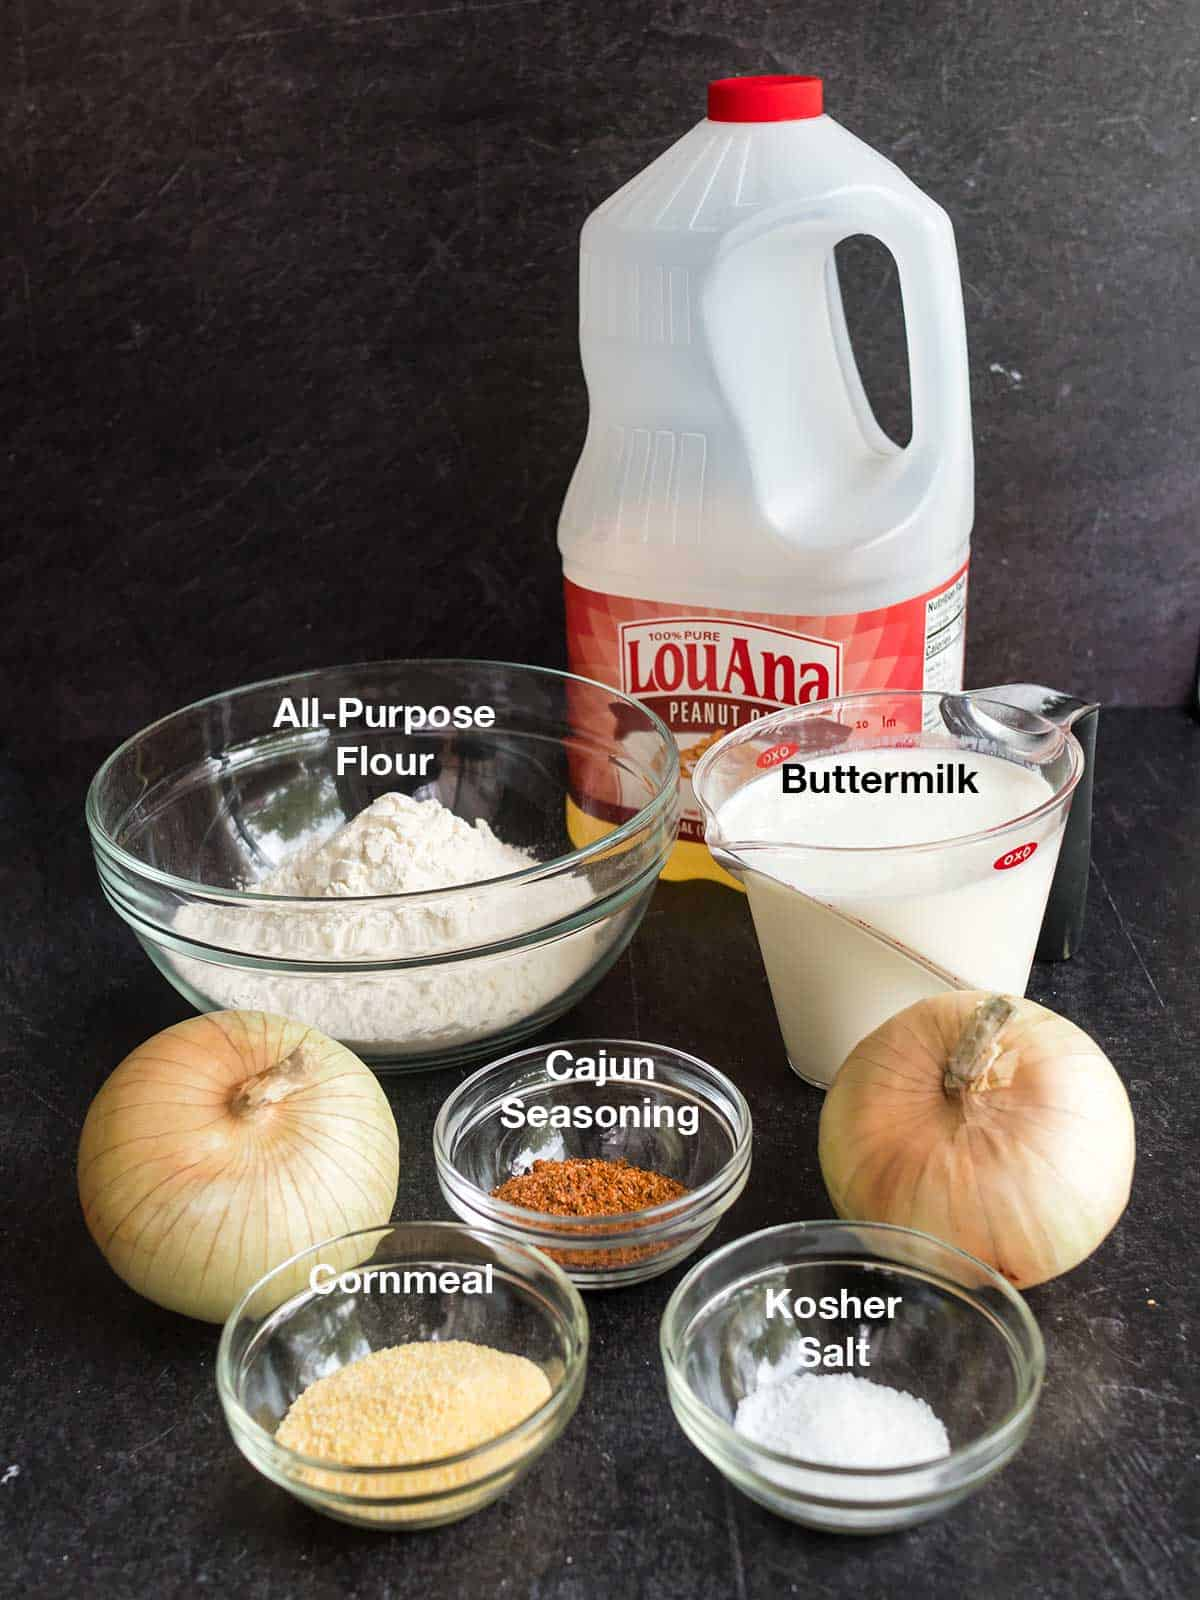 Ingredients for onion stings.